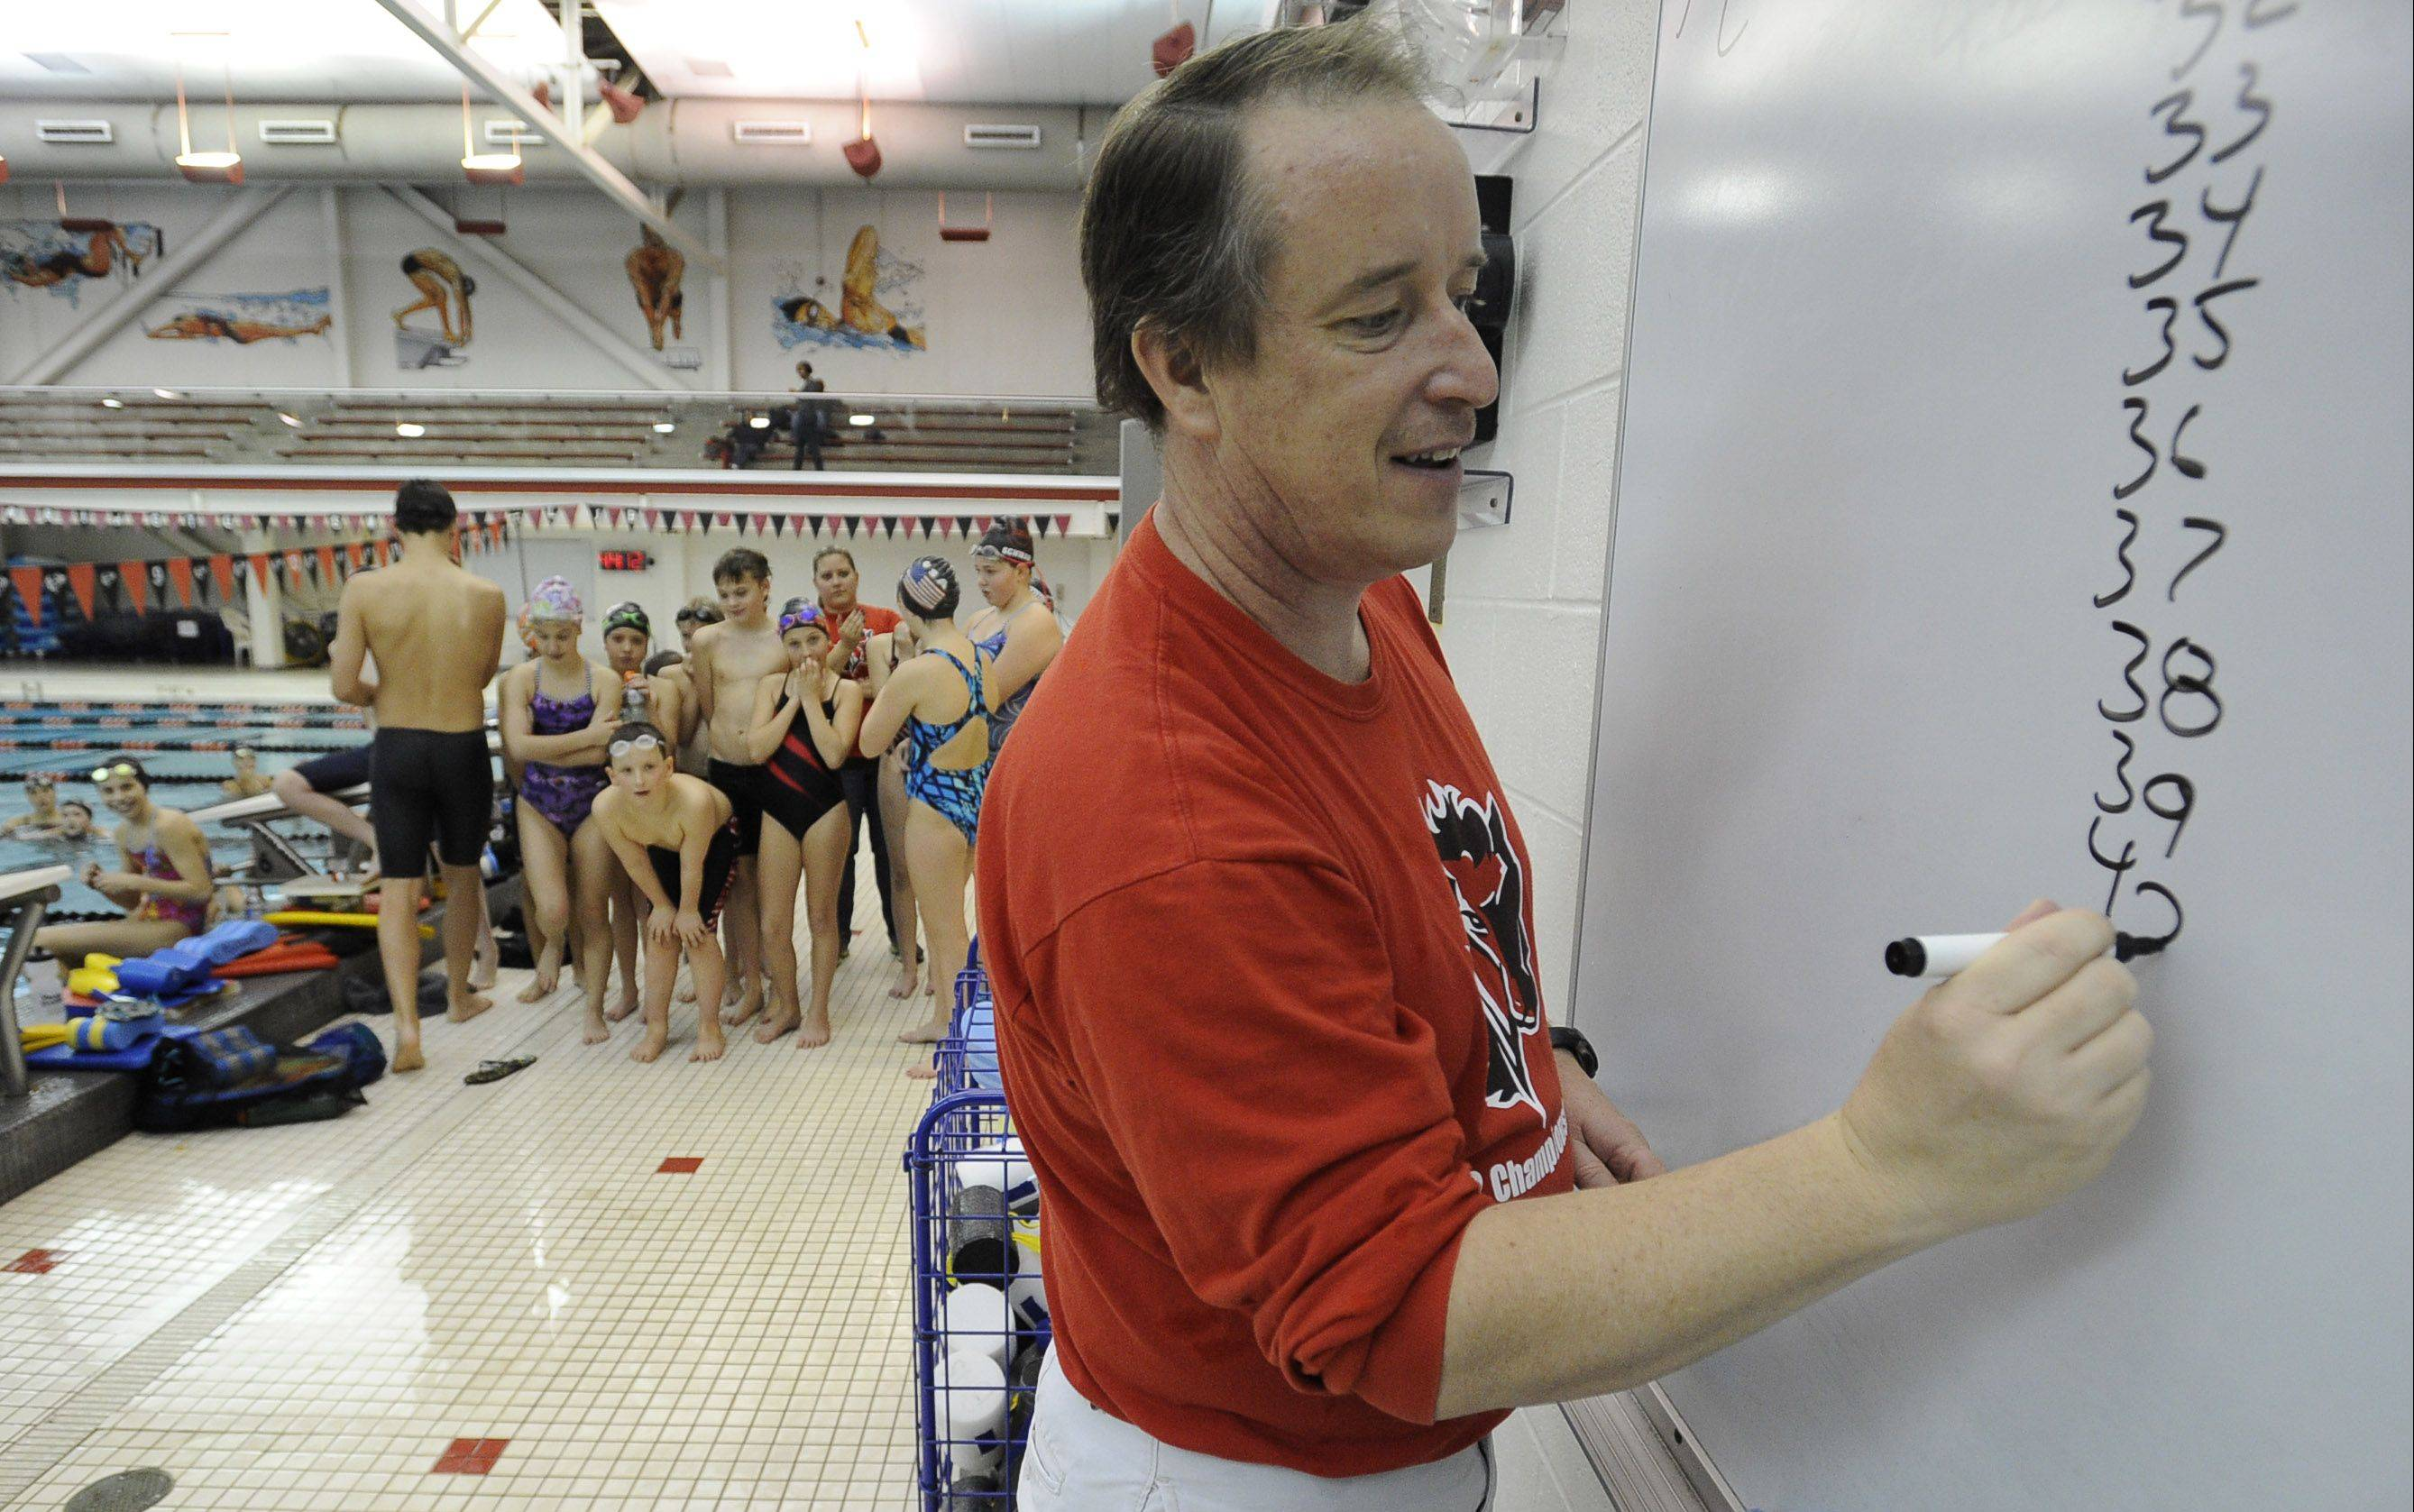 Barrington Swim Club head coach Rob Emery writes down instructions for the Barrington Swim Club and Jamaica Tornadoes during a joint practice Friday at Barrington High School.